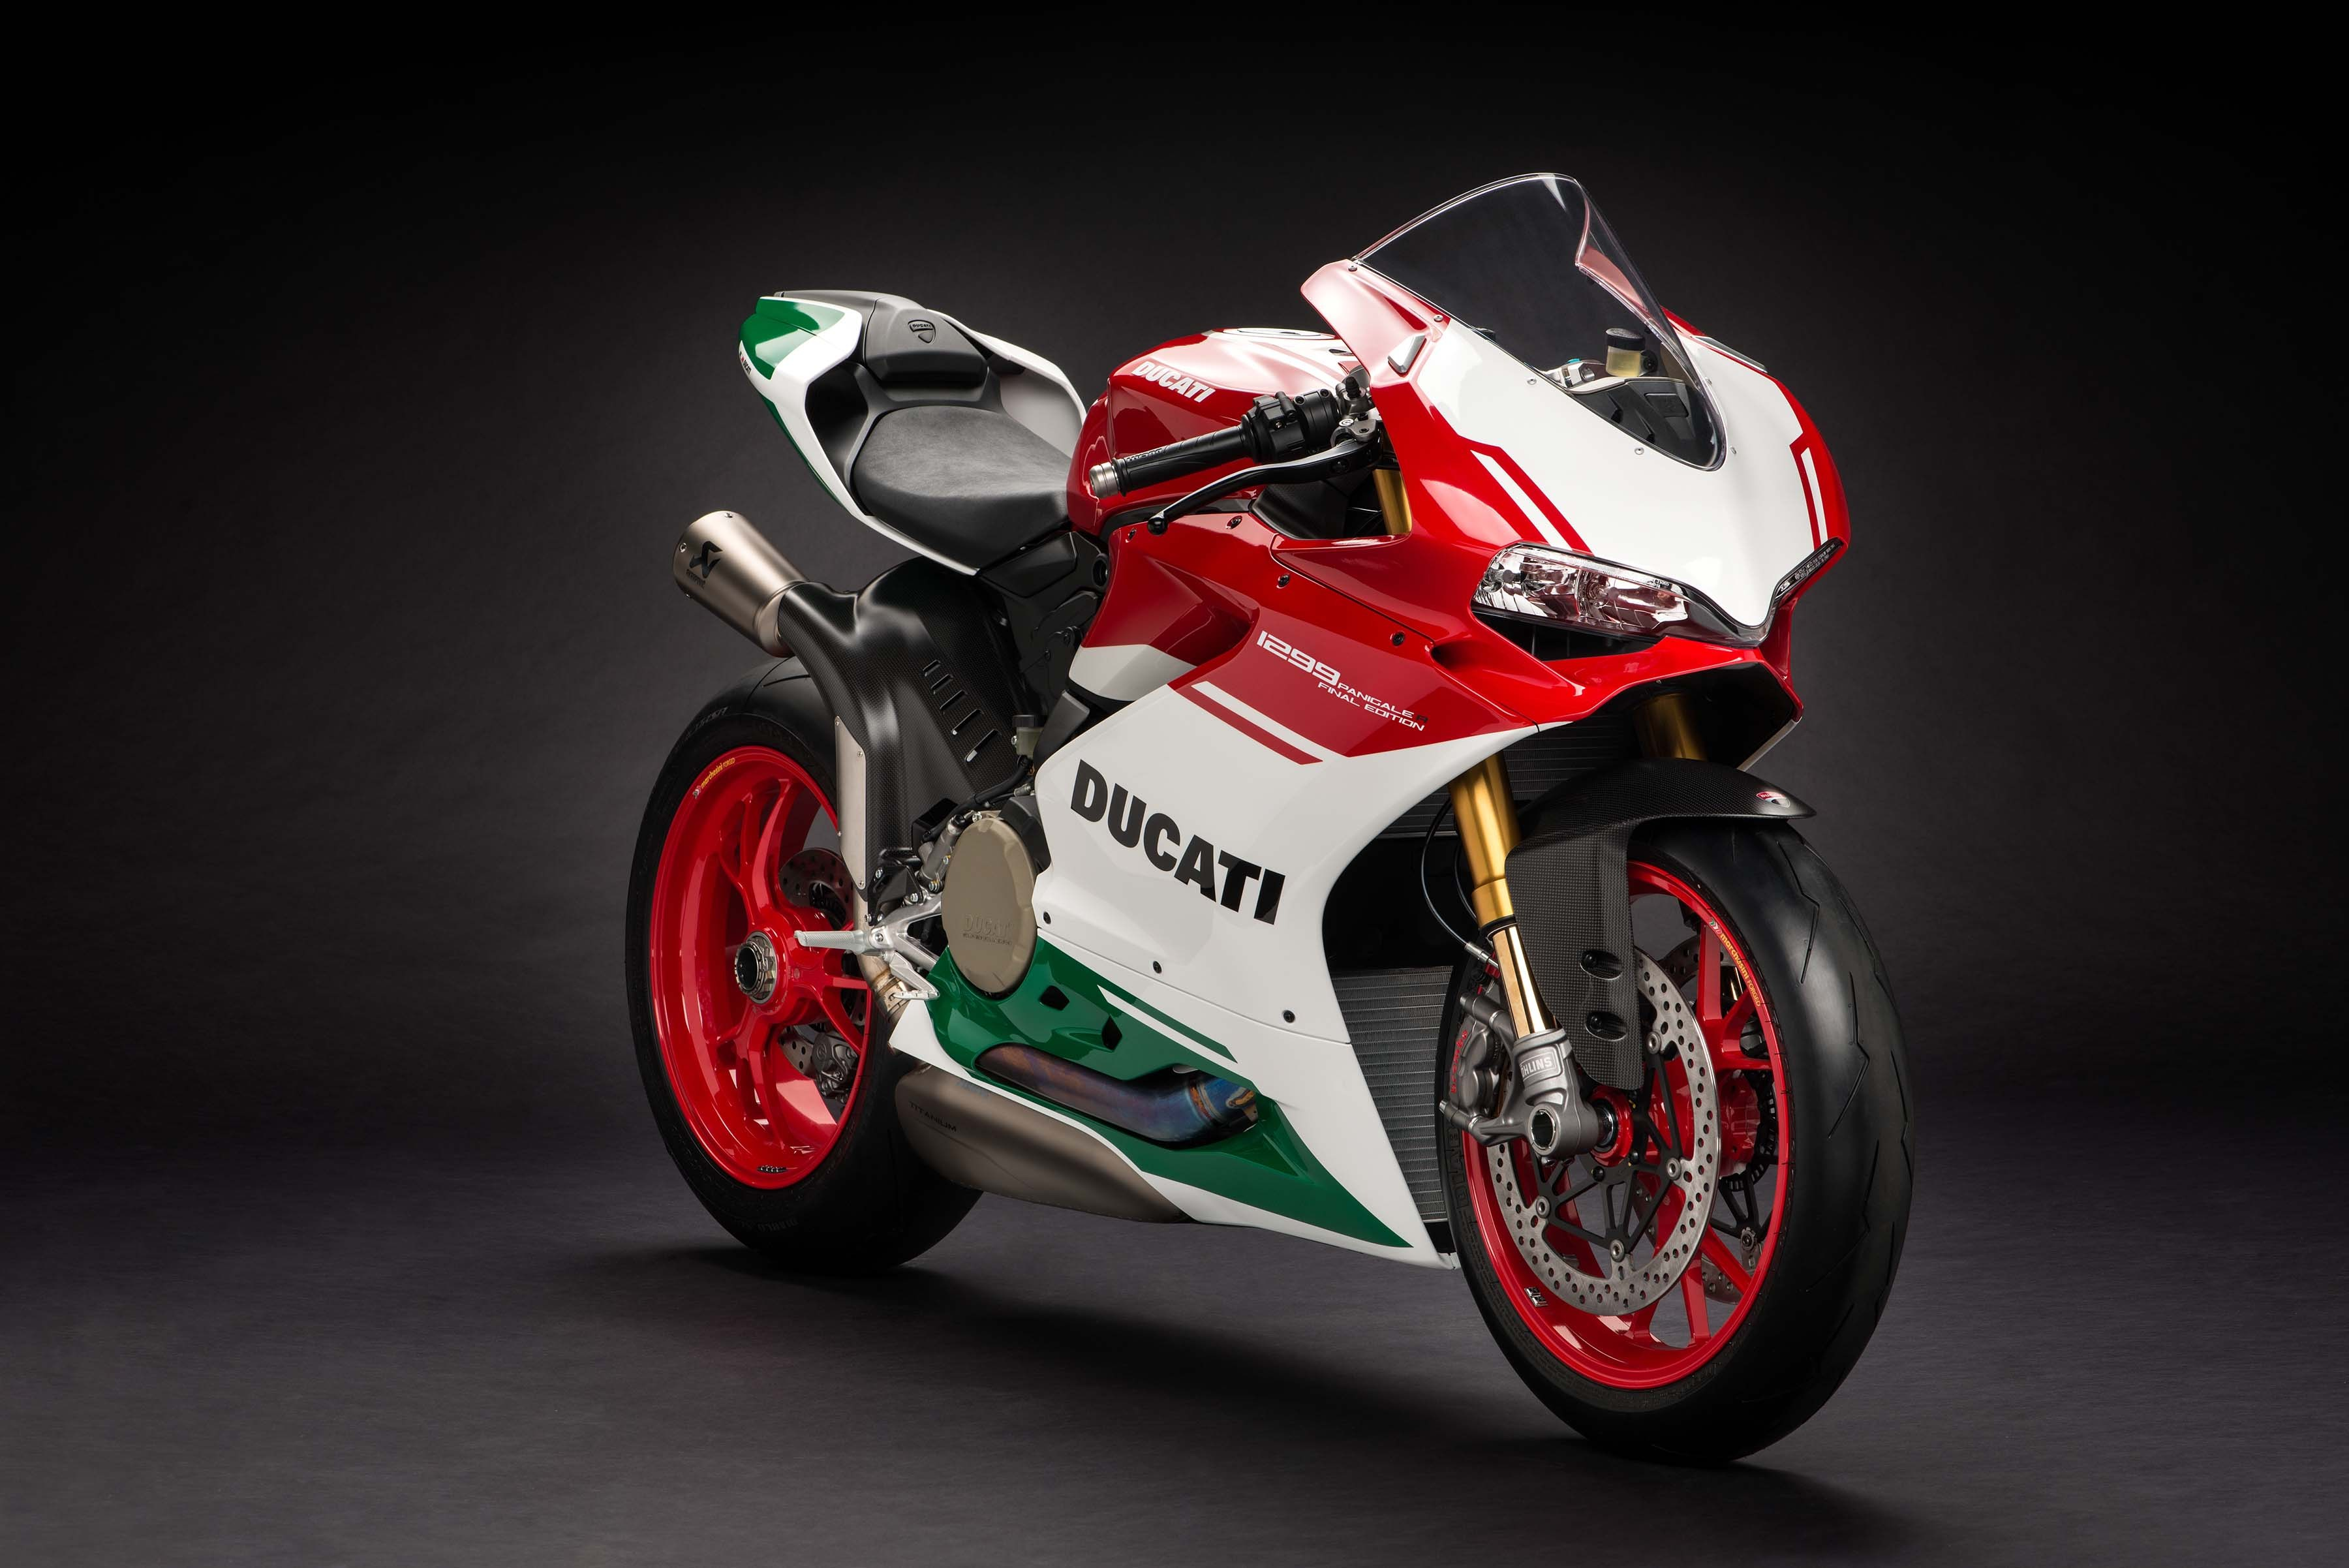 Ducati 1299 Panigale S 4k Wallpapers: Ducati 1299 Panigale R Final Edition, HD Bikes, 4k